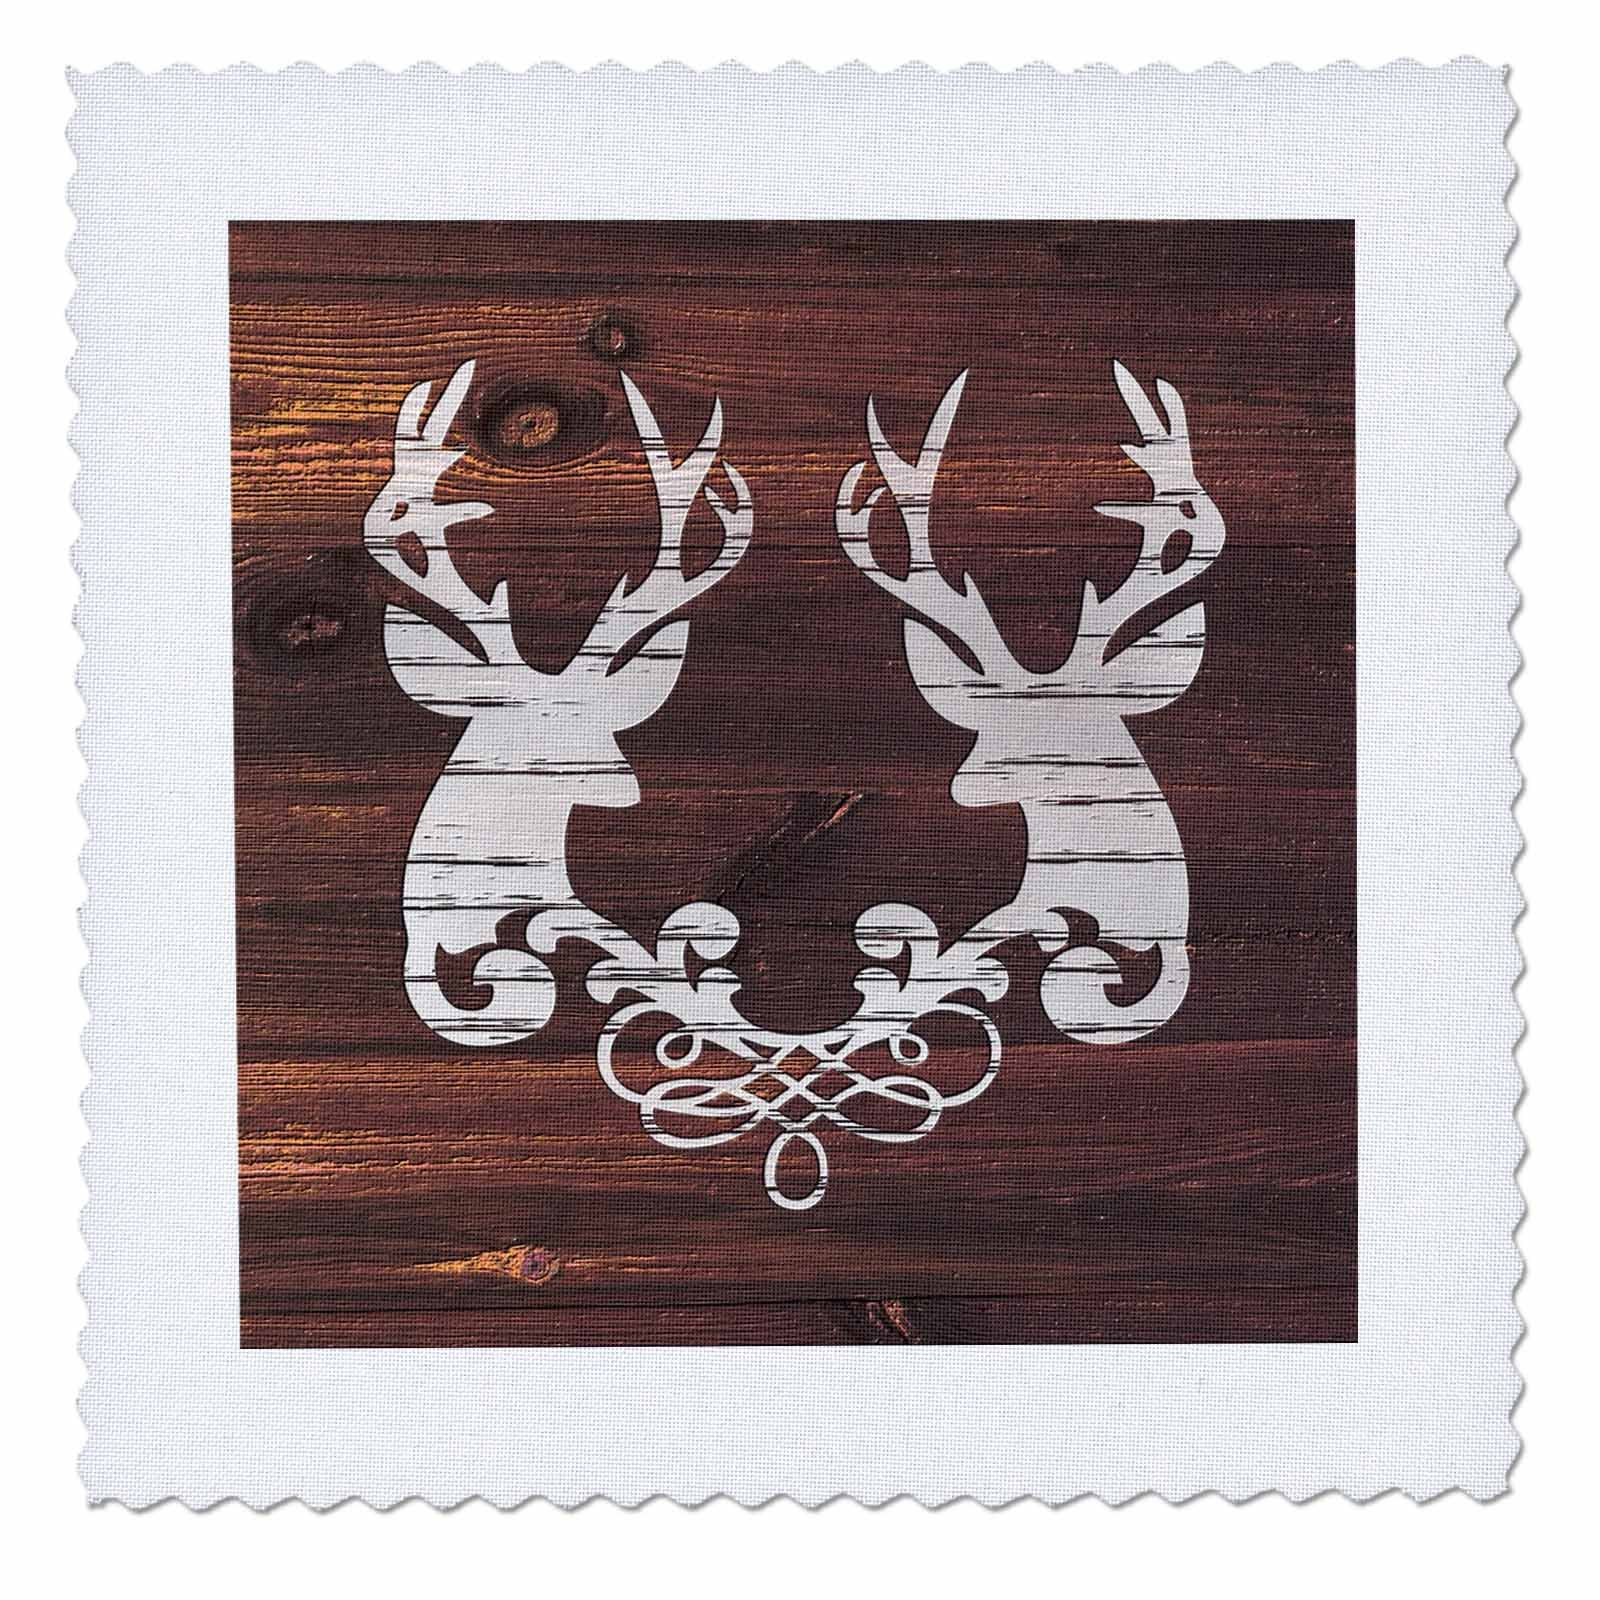 3dRose Russ Billington Designs - Two Stags Heads with Scroll- White on Brown Wood Effect- Not Real Wood - 16x16 inch quilt square (qs_262010_6)